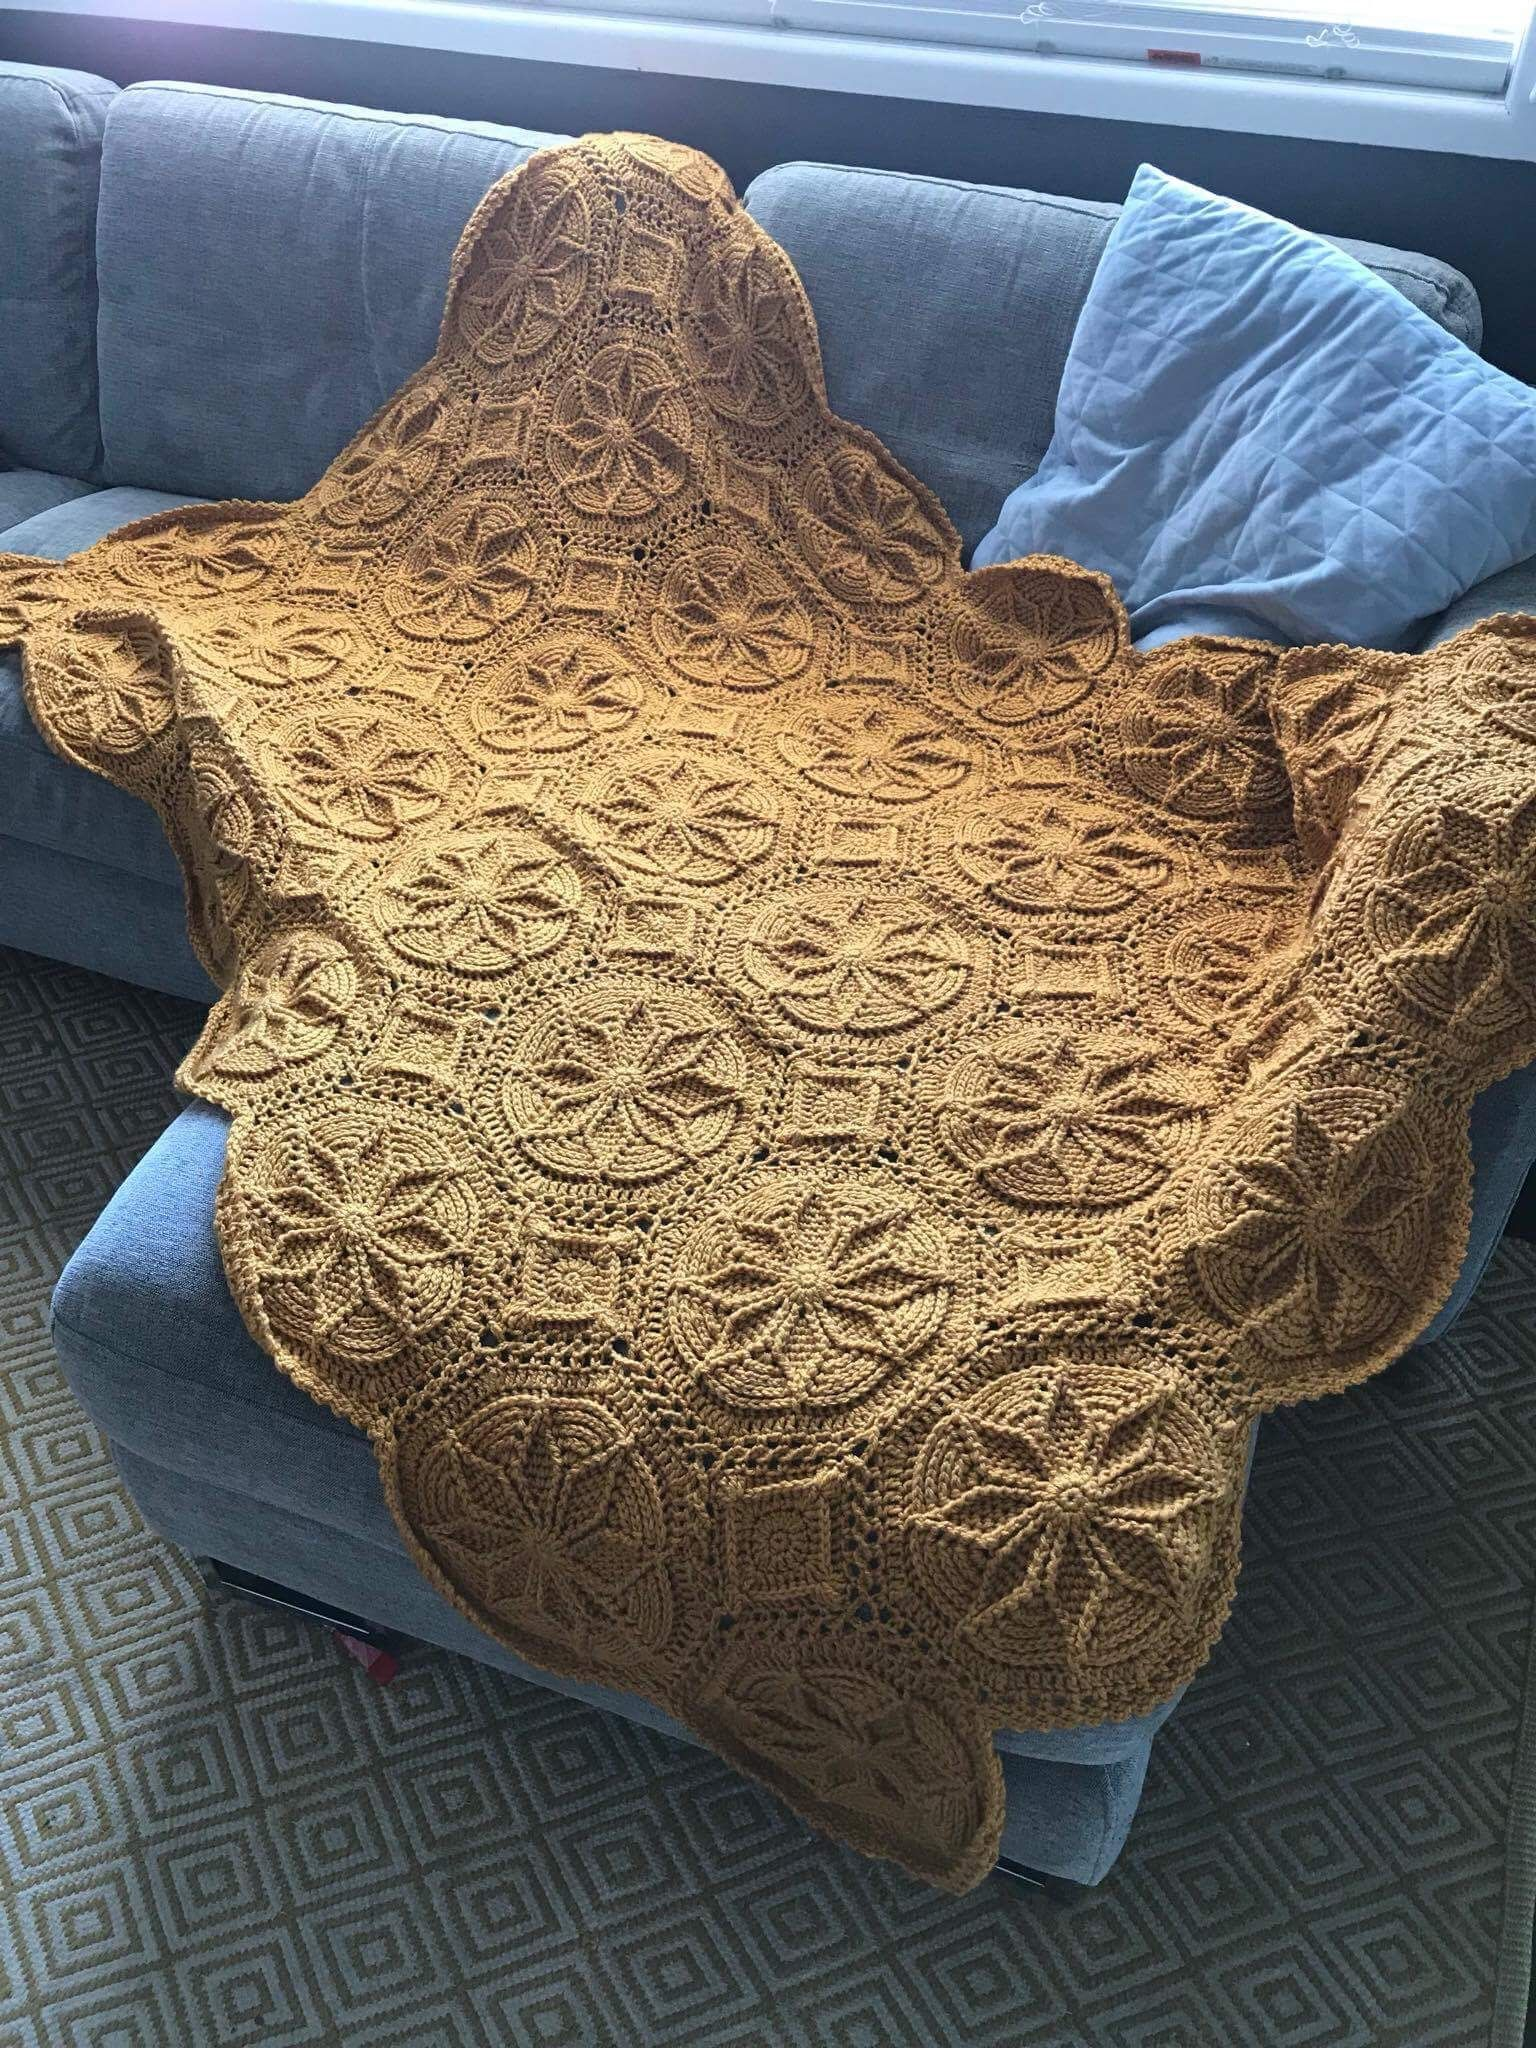 A Priscilla Hewitt Pattern Grenoble Matelasse Afghan Made By Barbara Whittaker With Images Knitting Projects Crochet Yarn